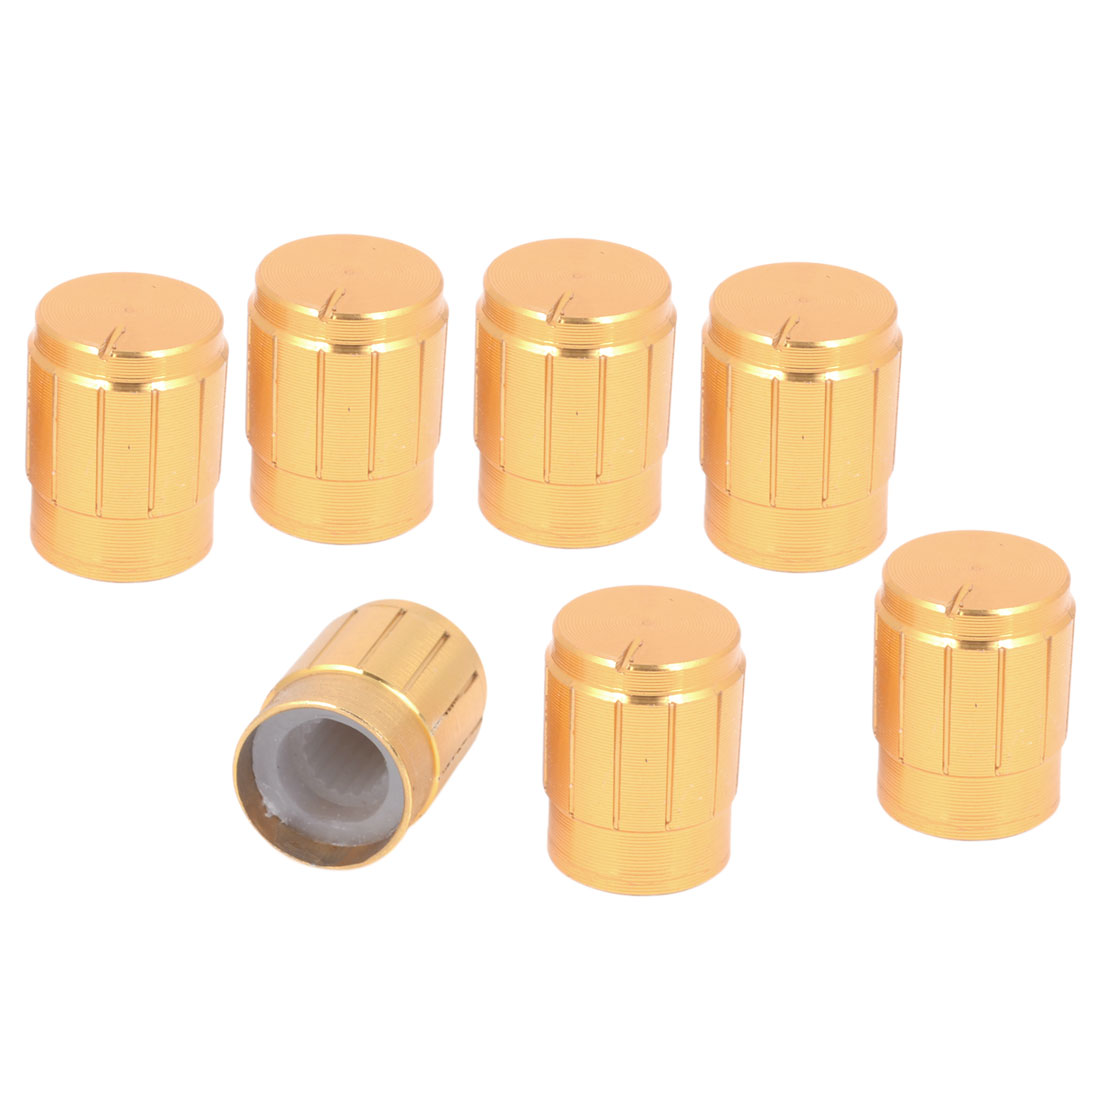 7 Pieces Aluminum 13mm x 17mm Volume Control Shaft Knobs